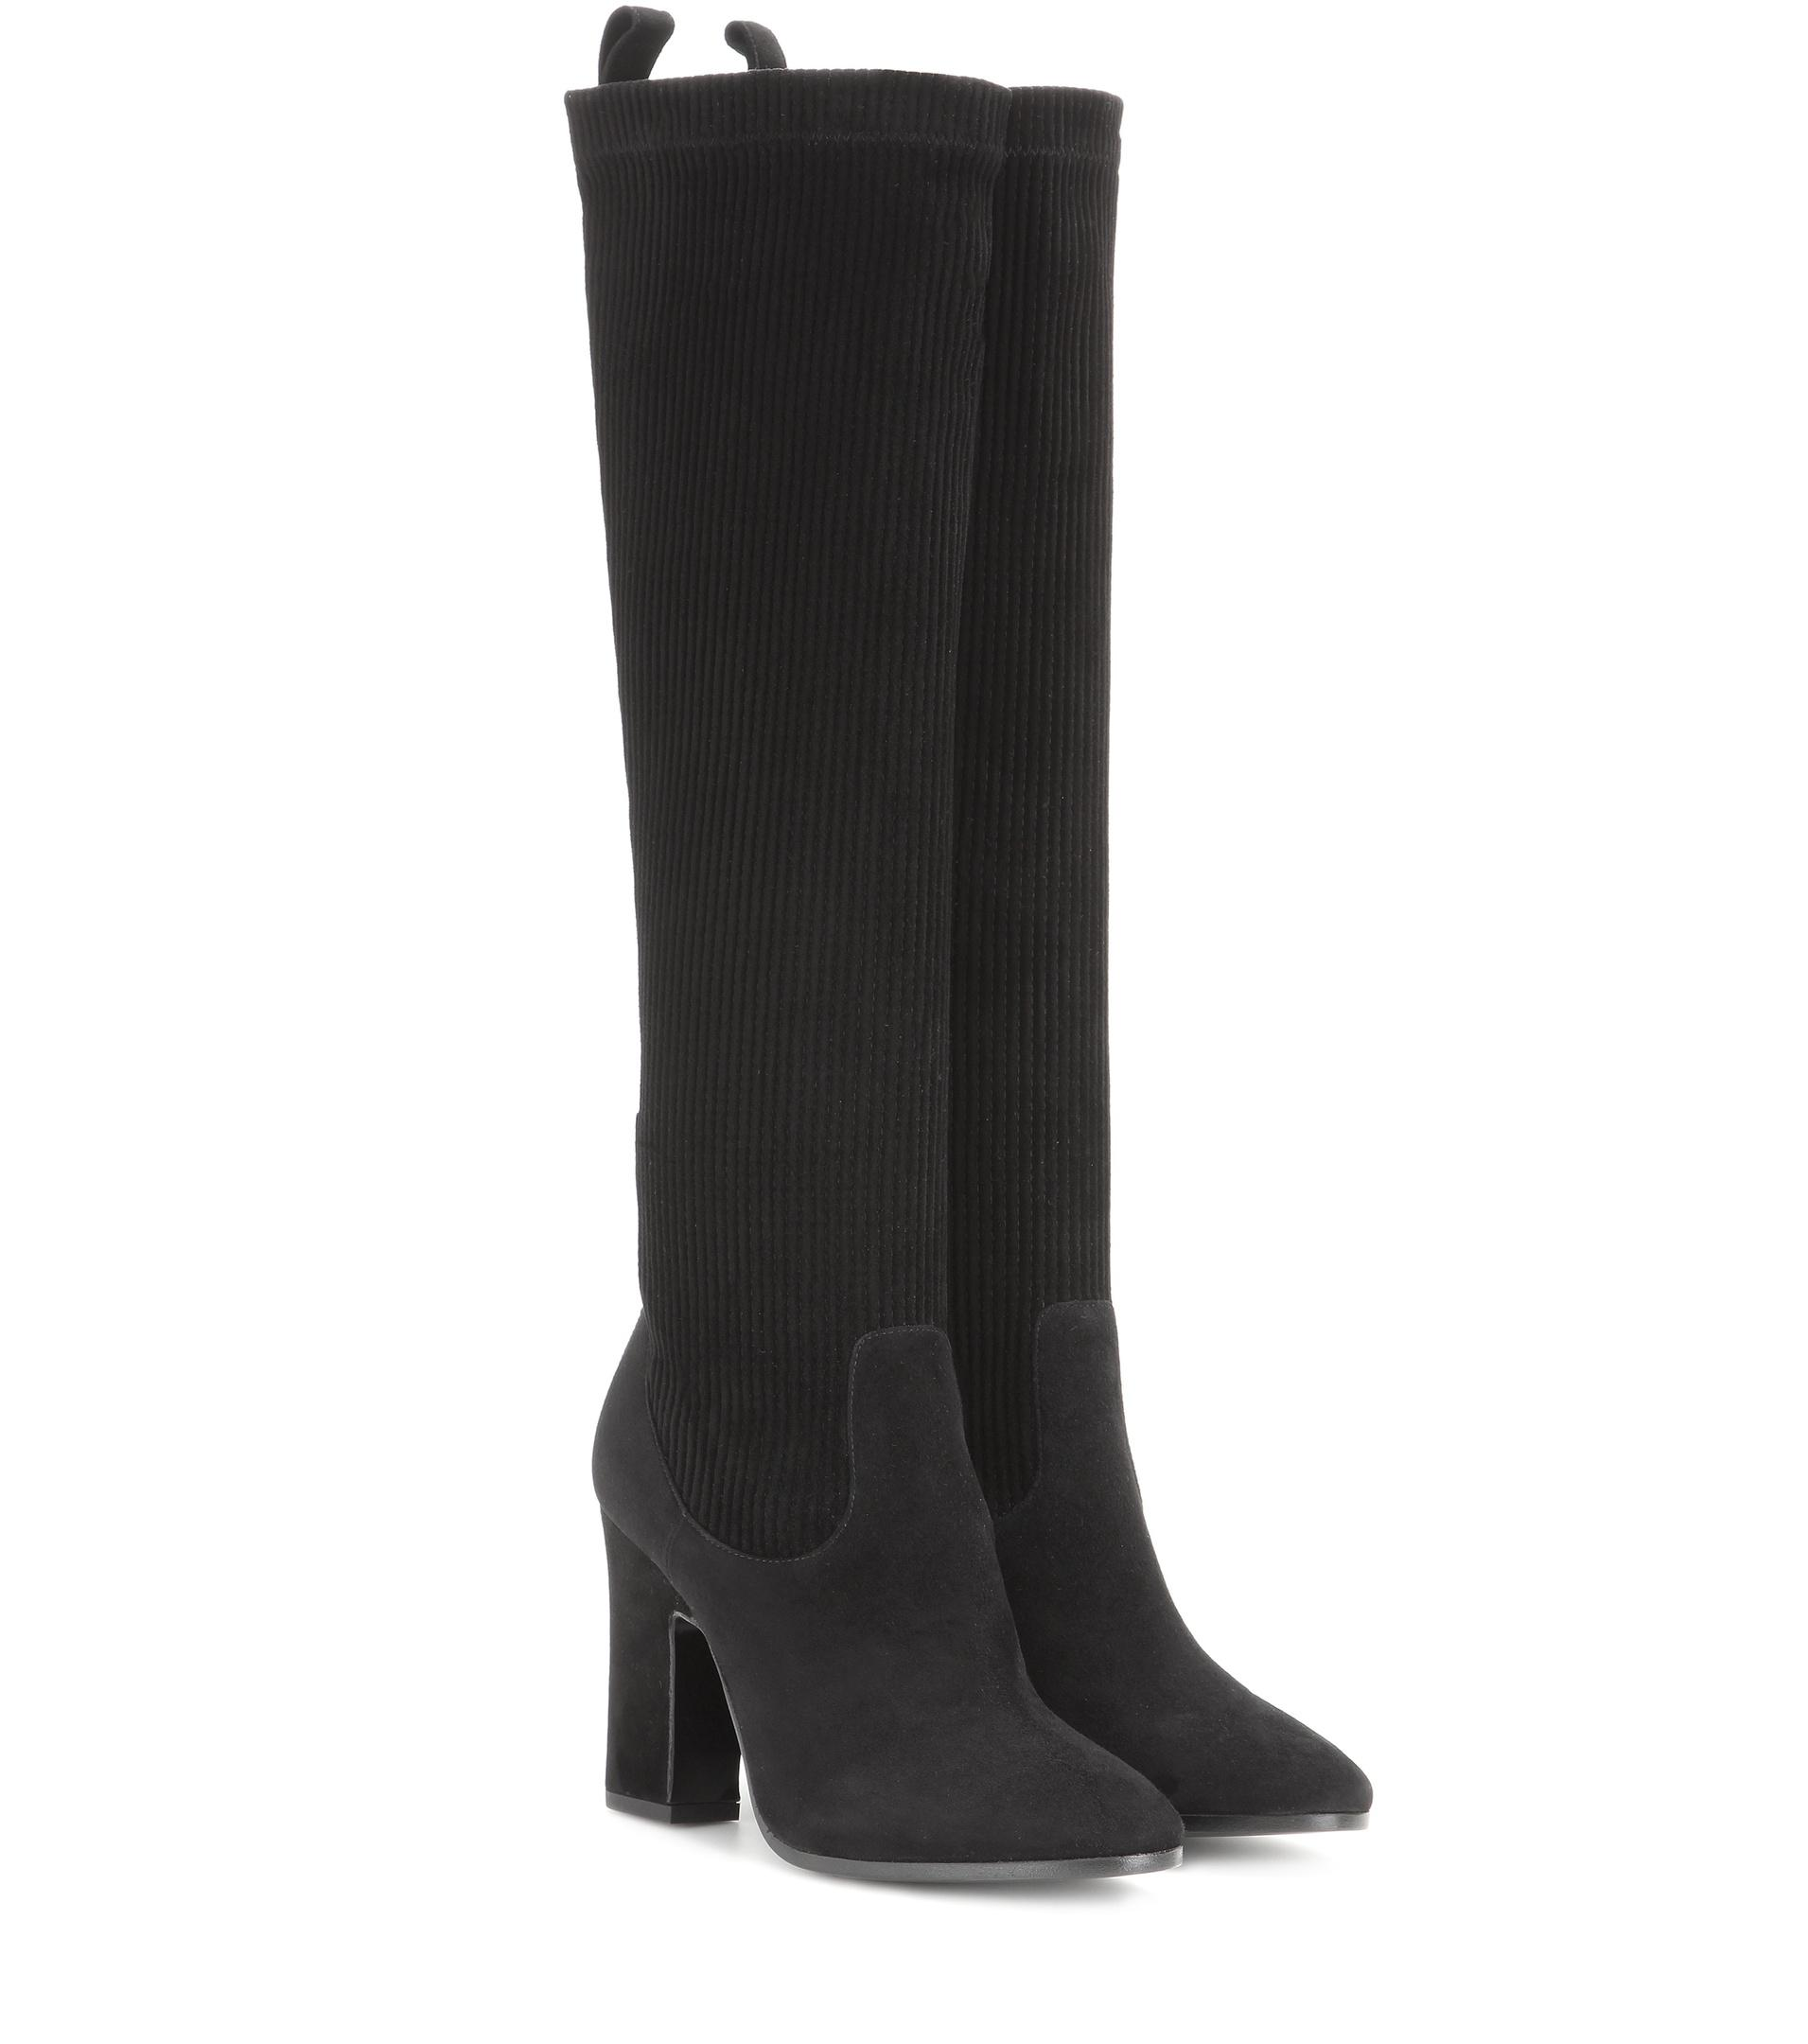 Pierre hardy Suede Knee-high Boots in Black